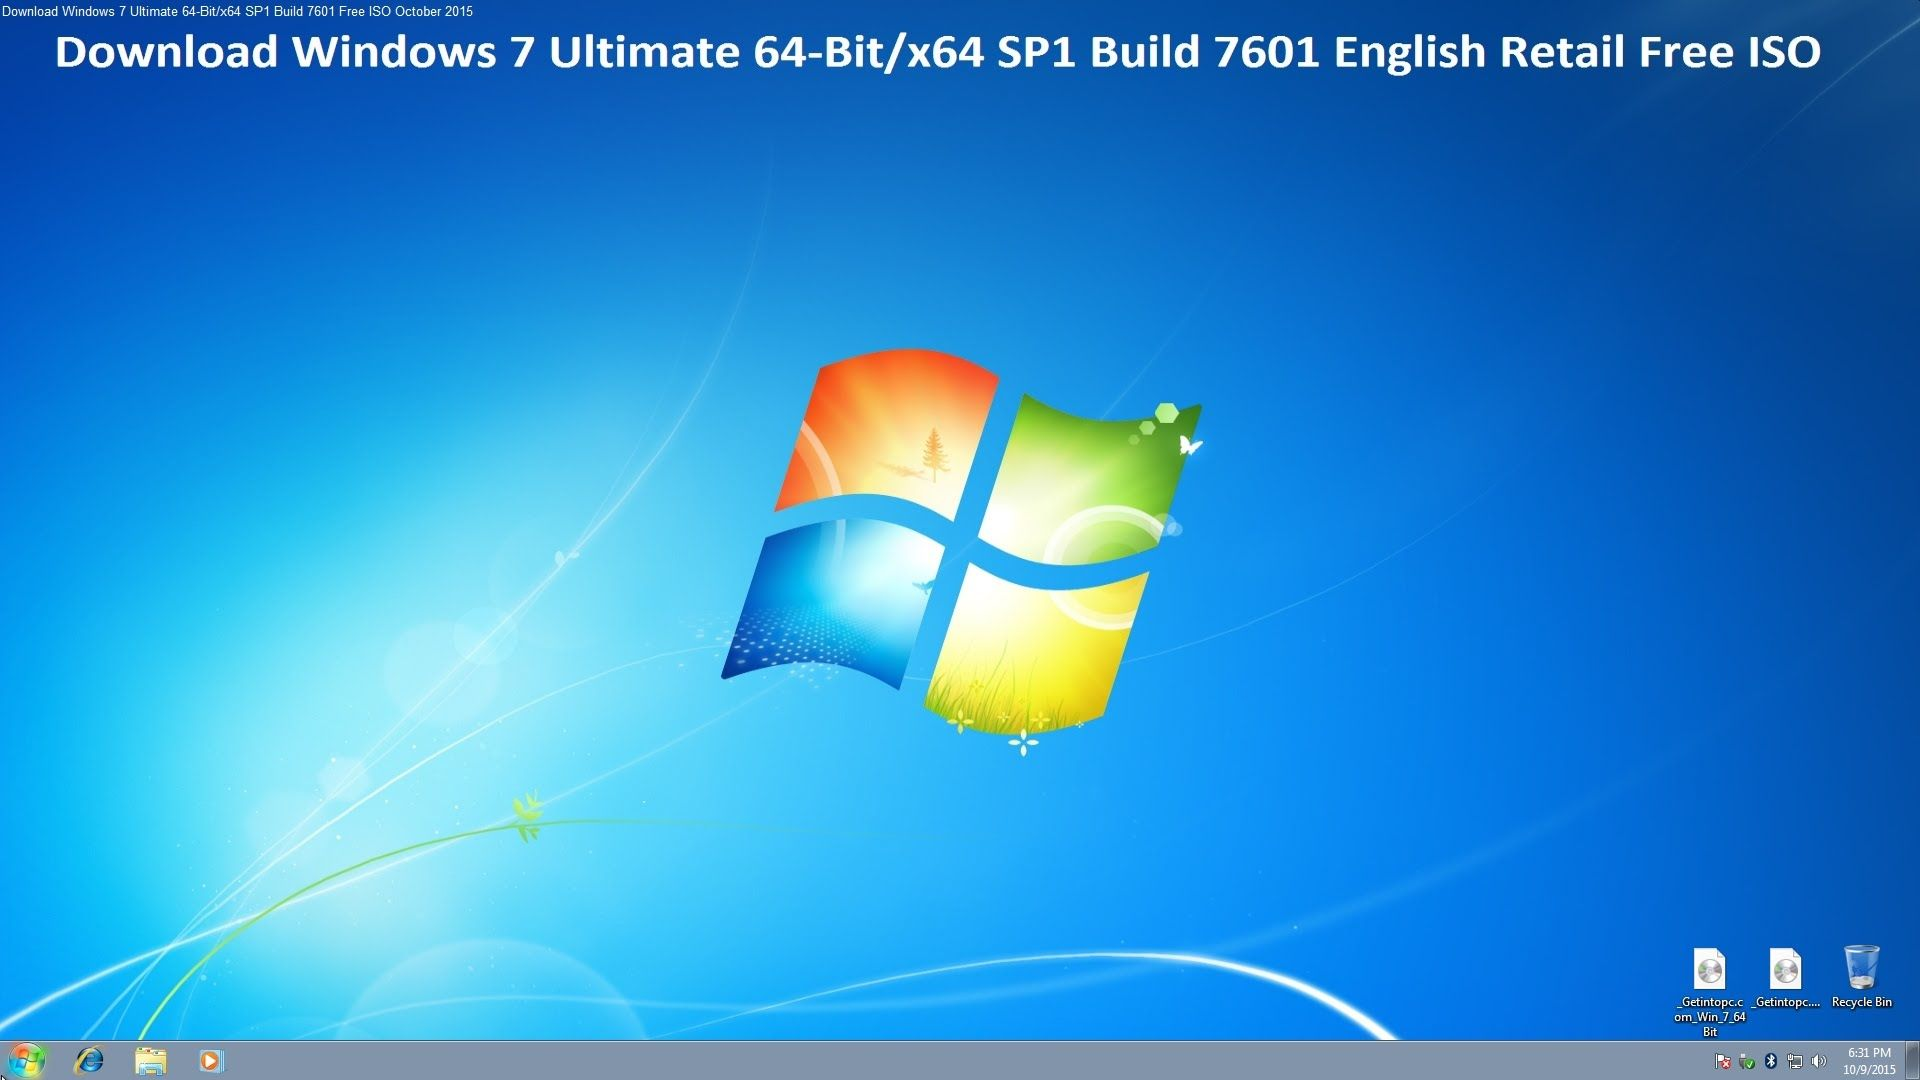 Download Windows 7 Ultimate 64 Bit X64 Sp1 Build 7601 Free Iso Android Emulator Data Recovery Android Apps Free